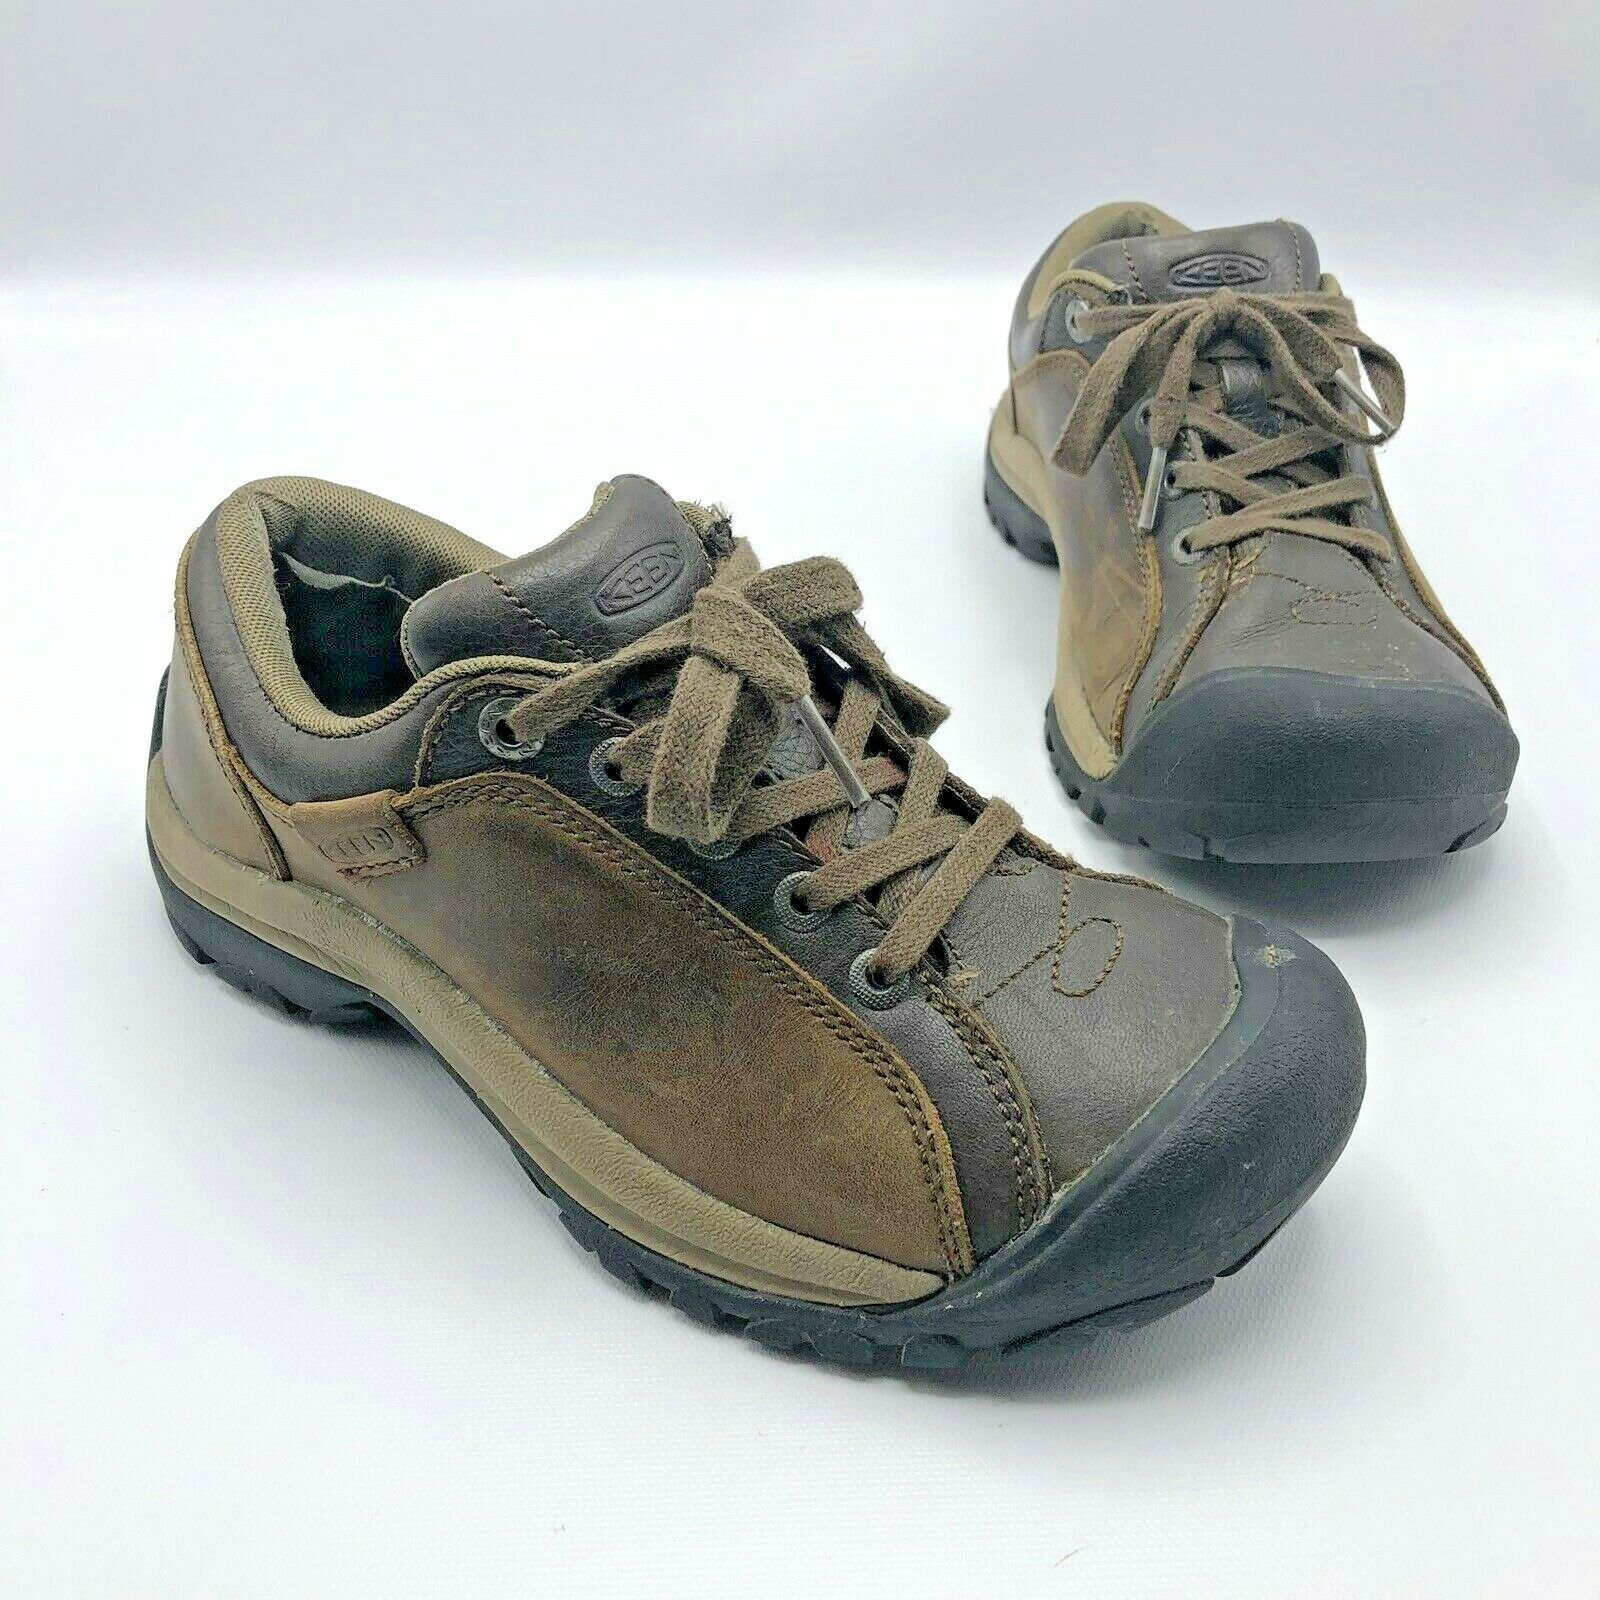 Keen Briggs Women Brown Lace Up Hiking Walking shoes Size 6.5 Pre Owned